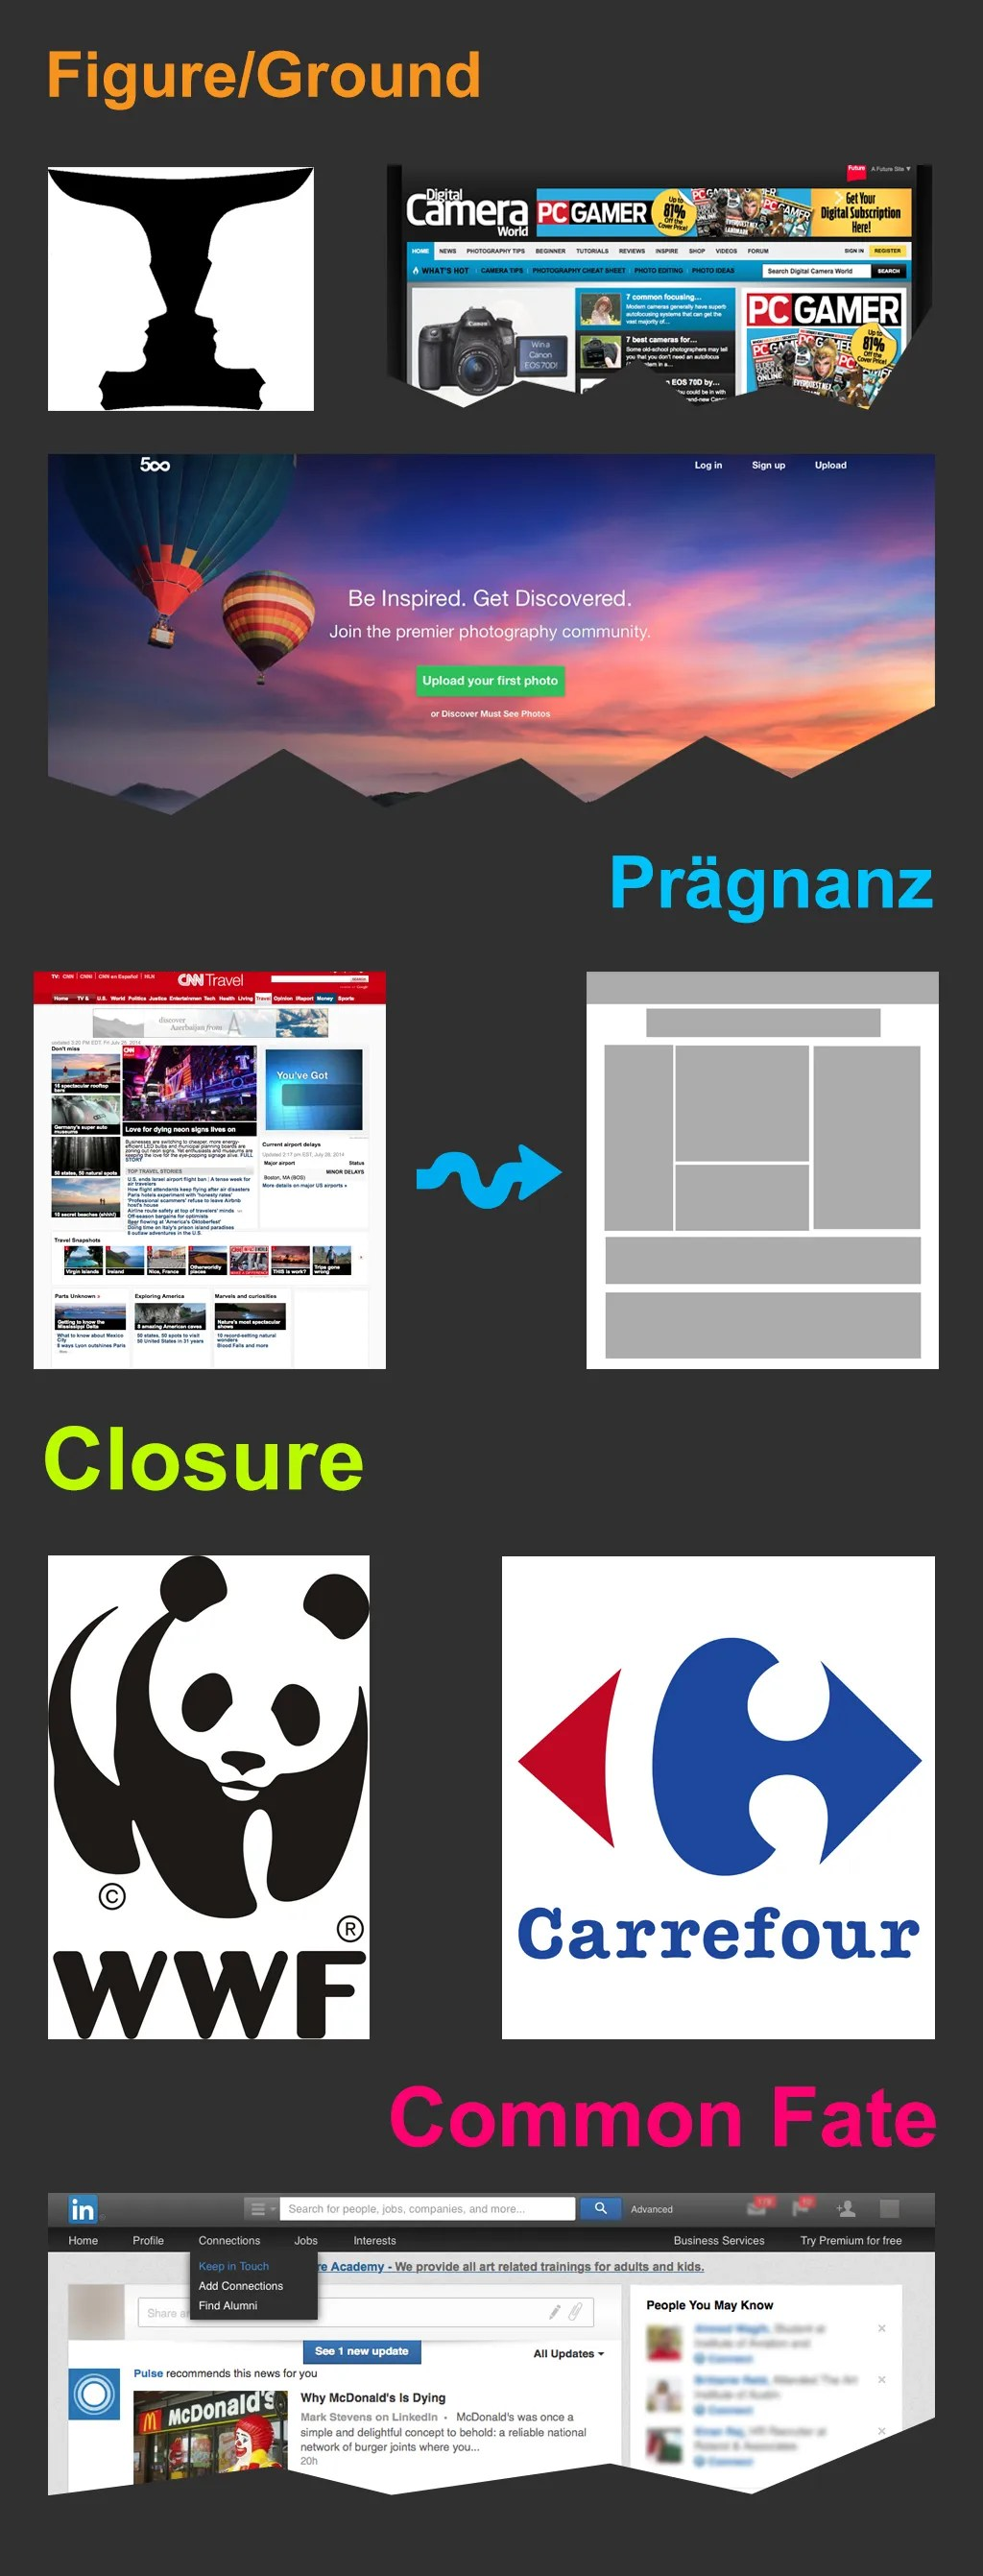 The Laws Of Figure Ground Pragnanz Closure And Common